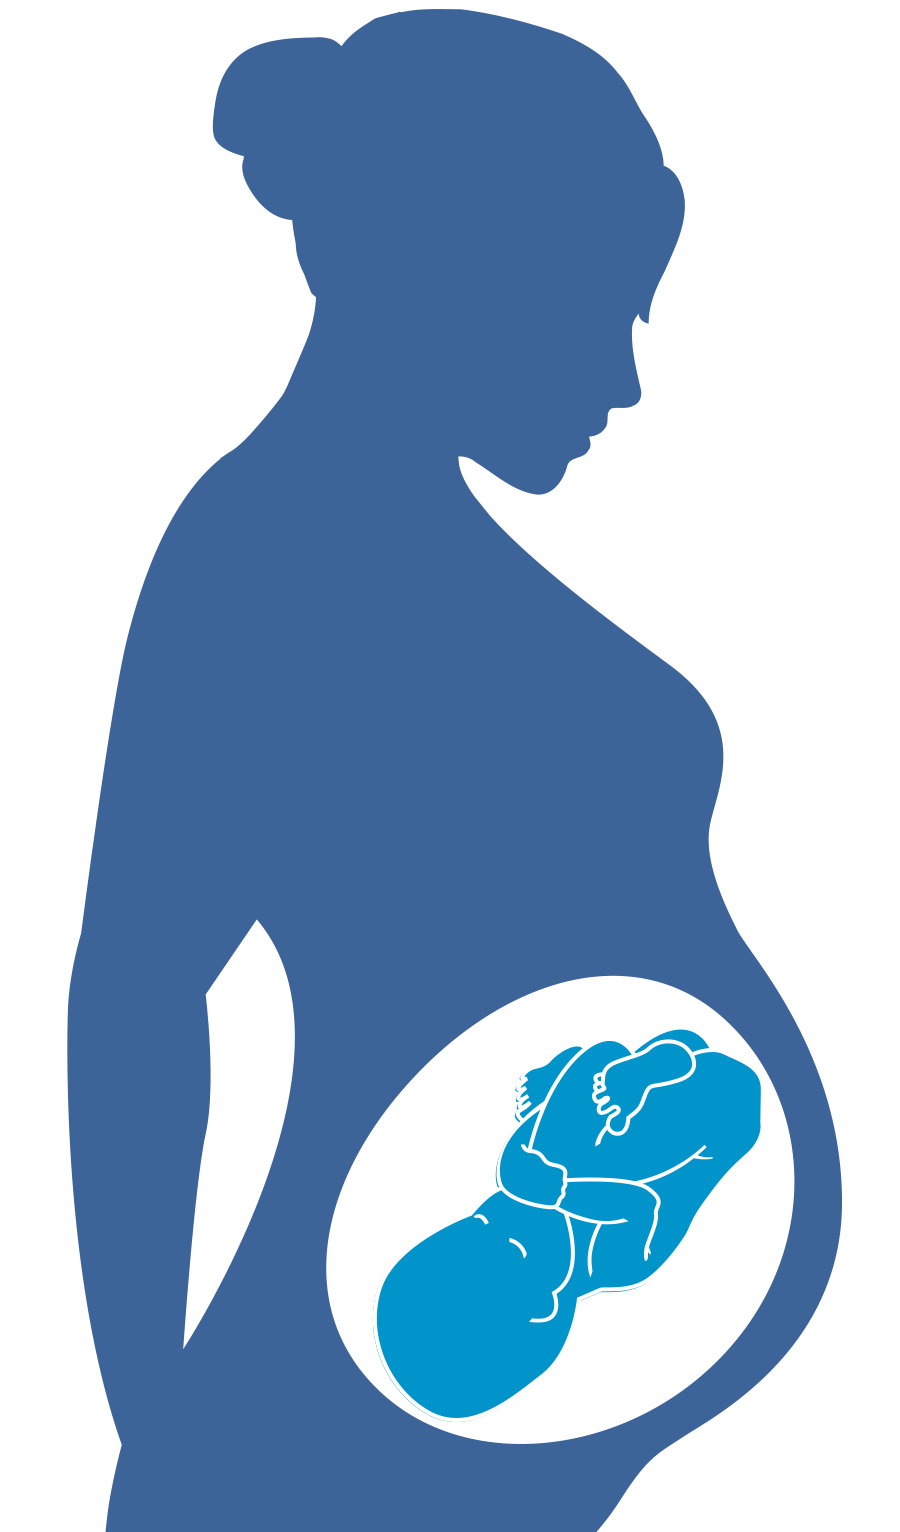 Hiv virus affecting the person clipart png image royalty free Pregnancy and HIV | womenshealth.gov image royalty free